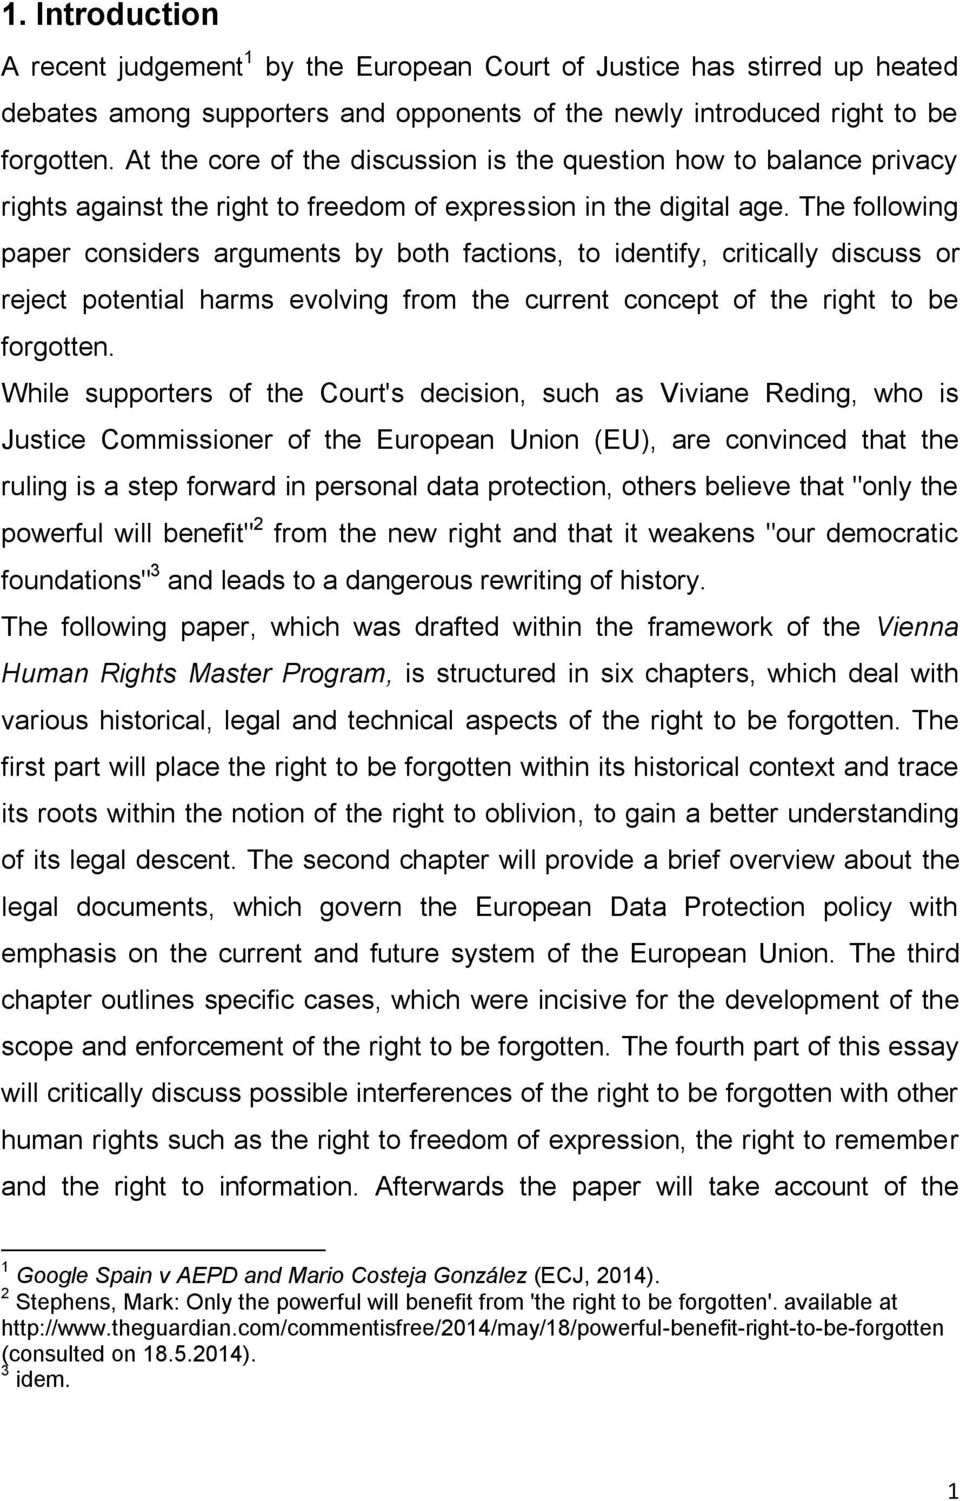 The following paper considers arguments by both factions, to identify, critically discuss or reject potential harms evolving from the current concept of the right to be forgotten.